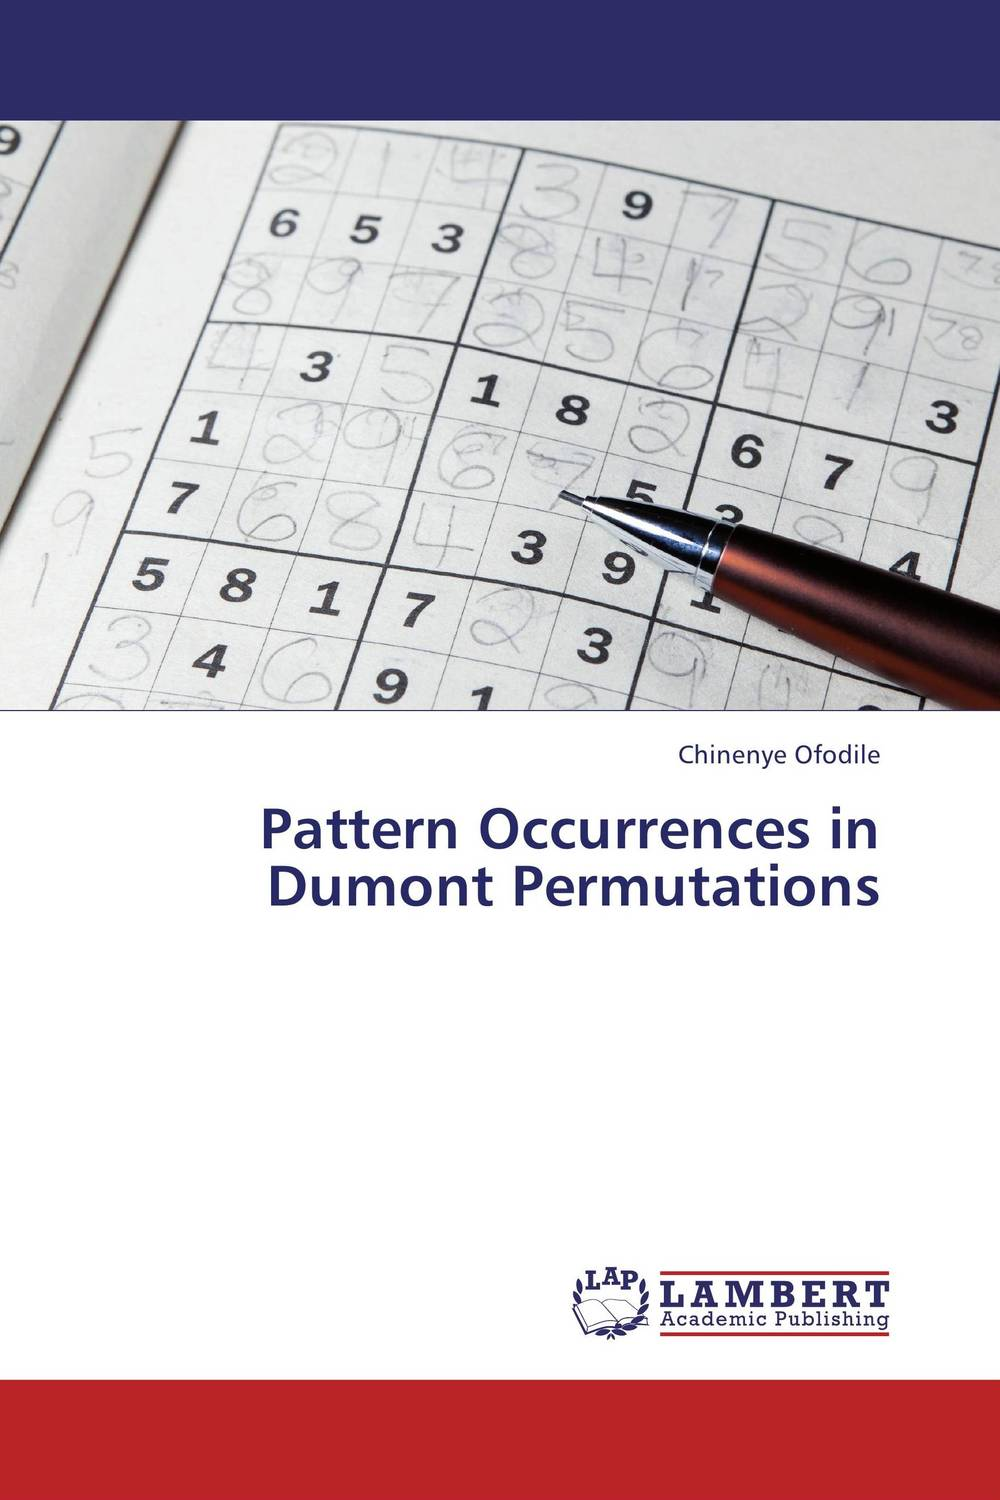 Pattern Occurrences in Dumont Permutations presidential nominee will address a gathering